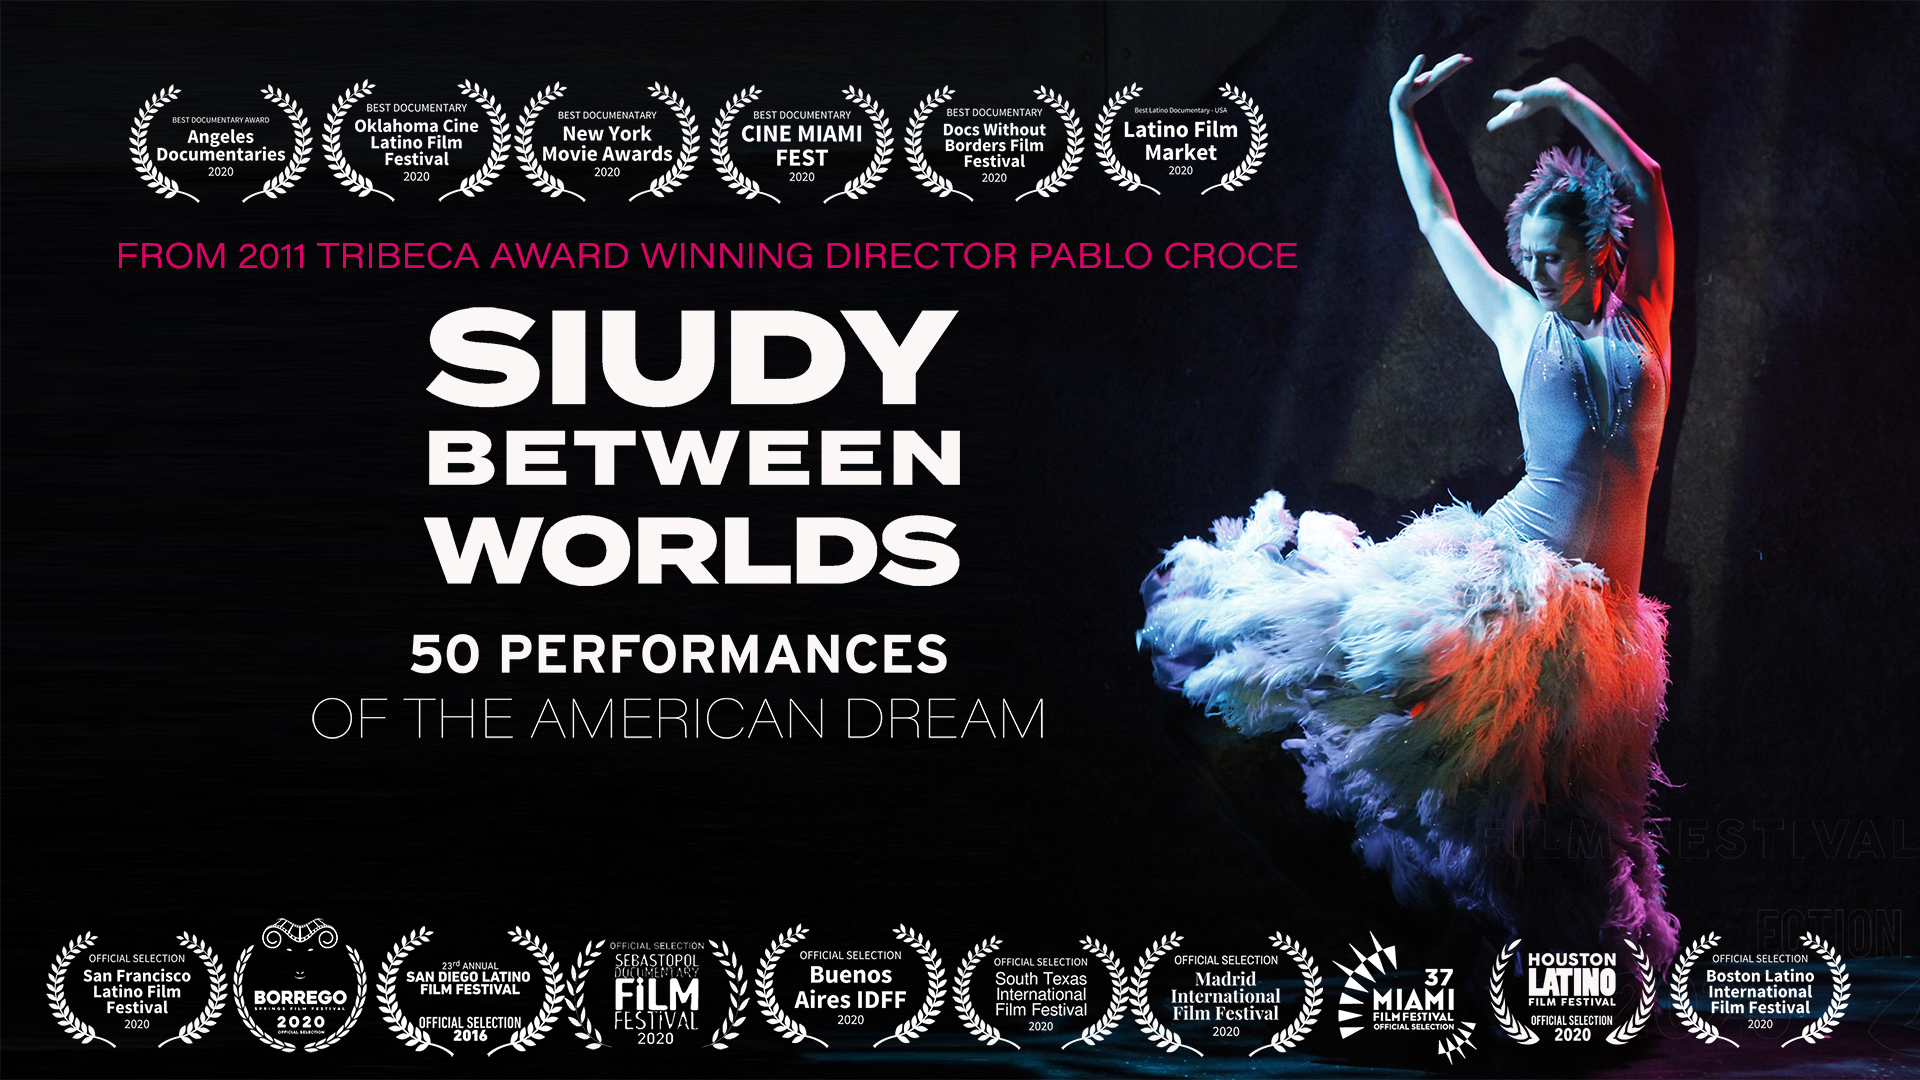 Siudy Between Worlds